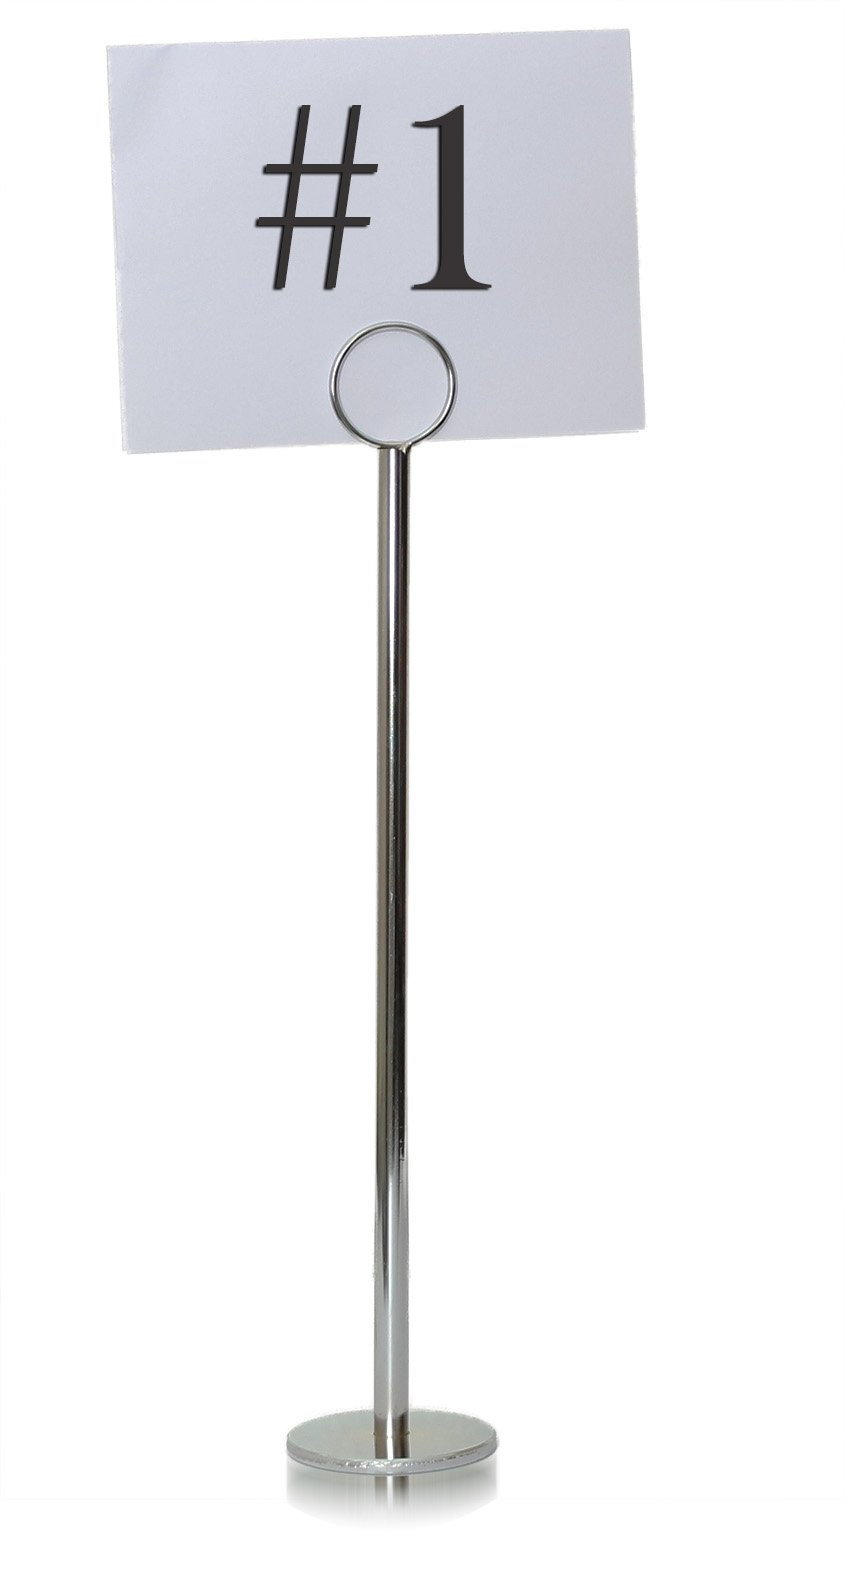 Tiger Chef Silver Table Number Holder Table Number Stands Place Card Holders Menu Holder, Sturdy Quality 12-inch (20, 12 Inch)